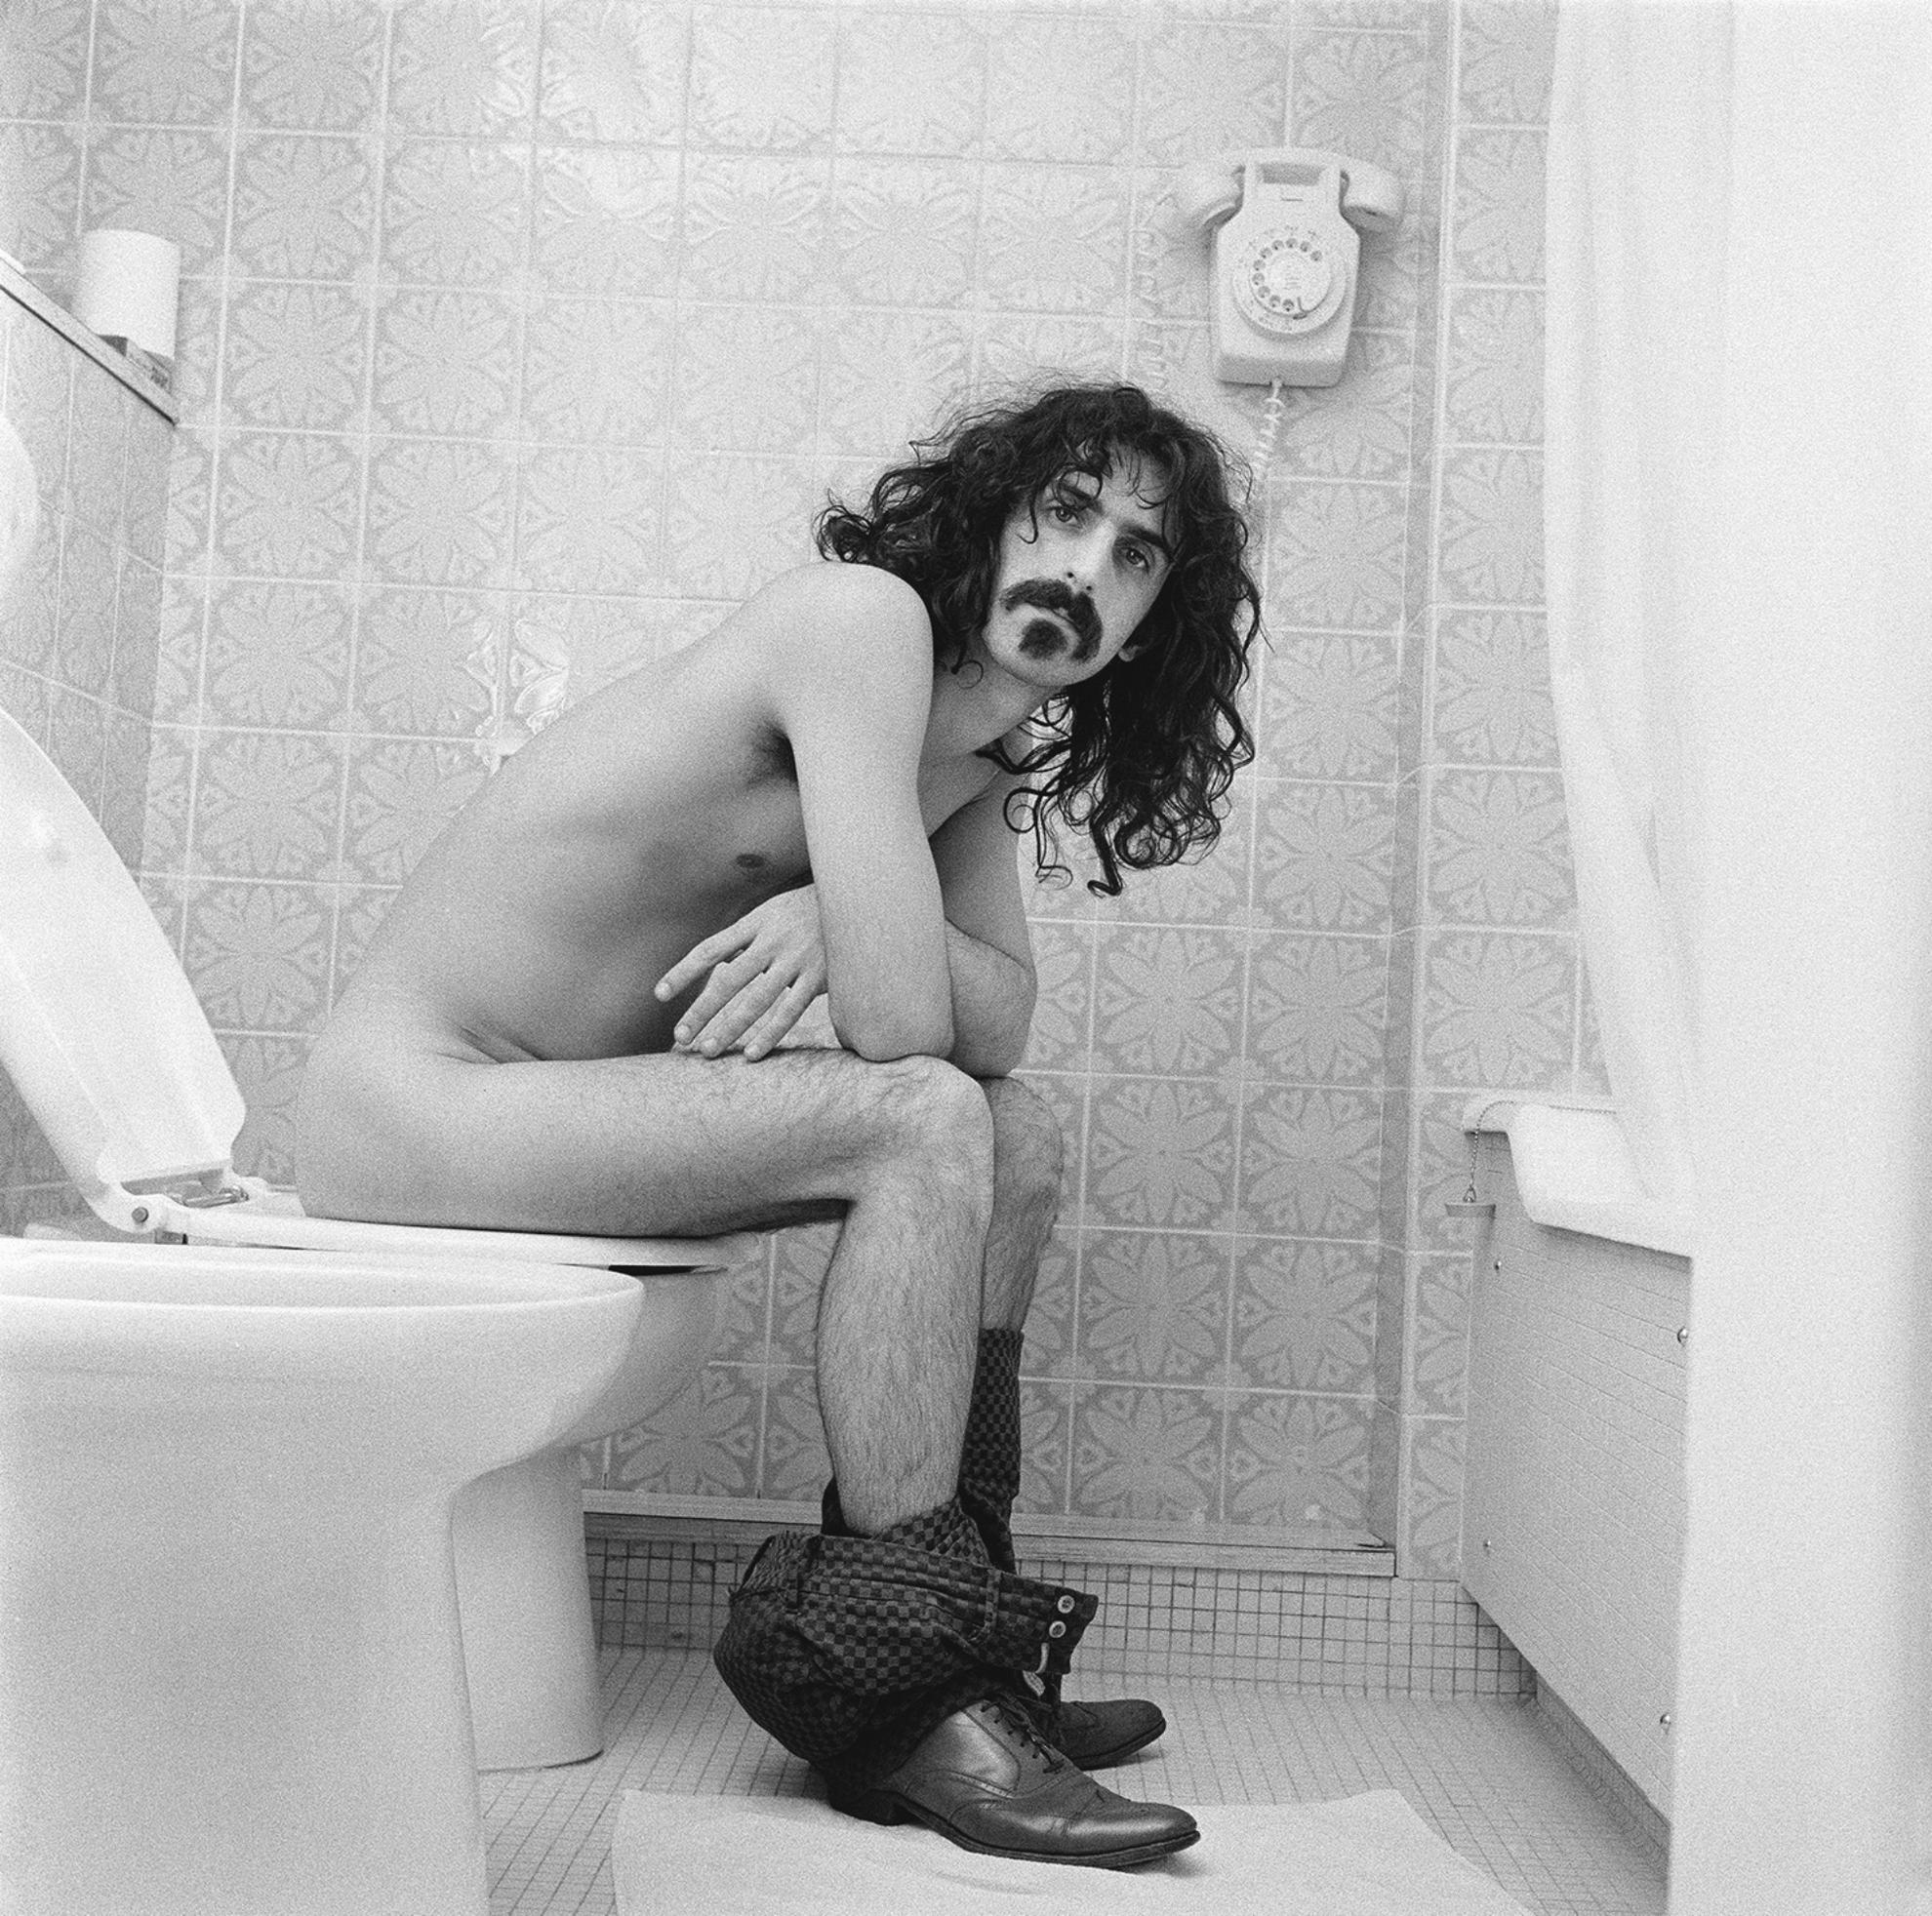 Robert Davidson - Frank Zappa At The Royal Garden Hotel, London, 1967-